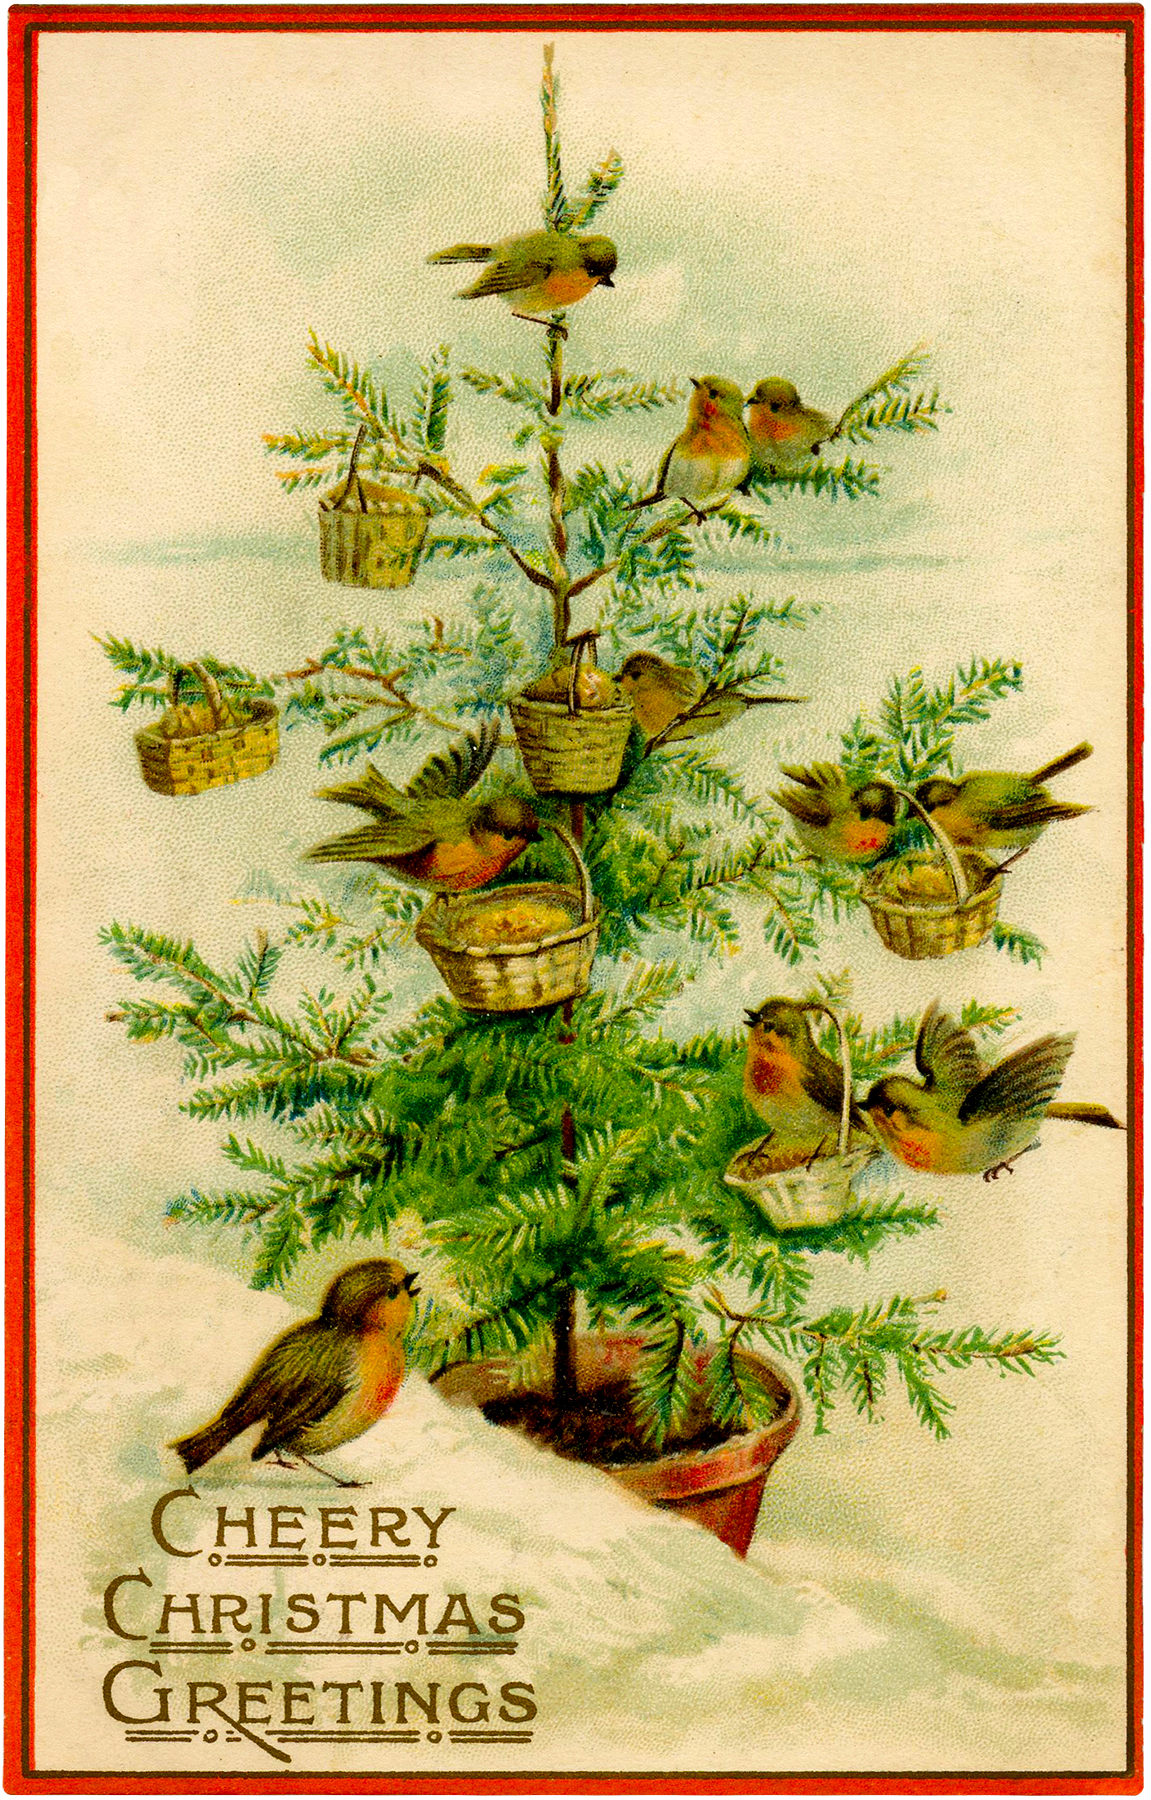 7 Christmas Birds Images Vintage Charm The Graphics Fairy